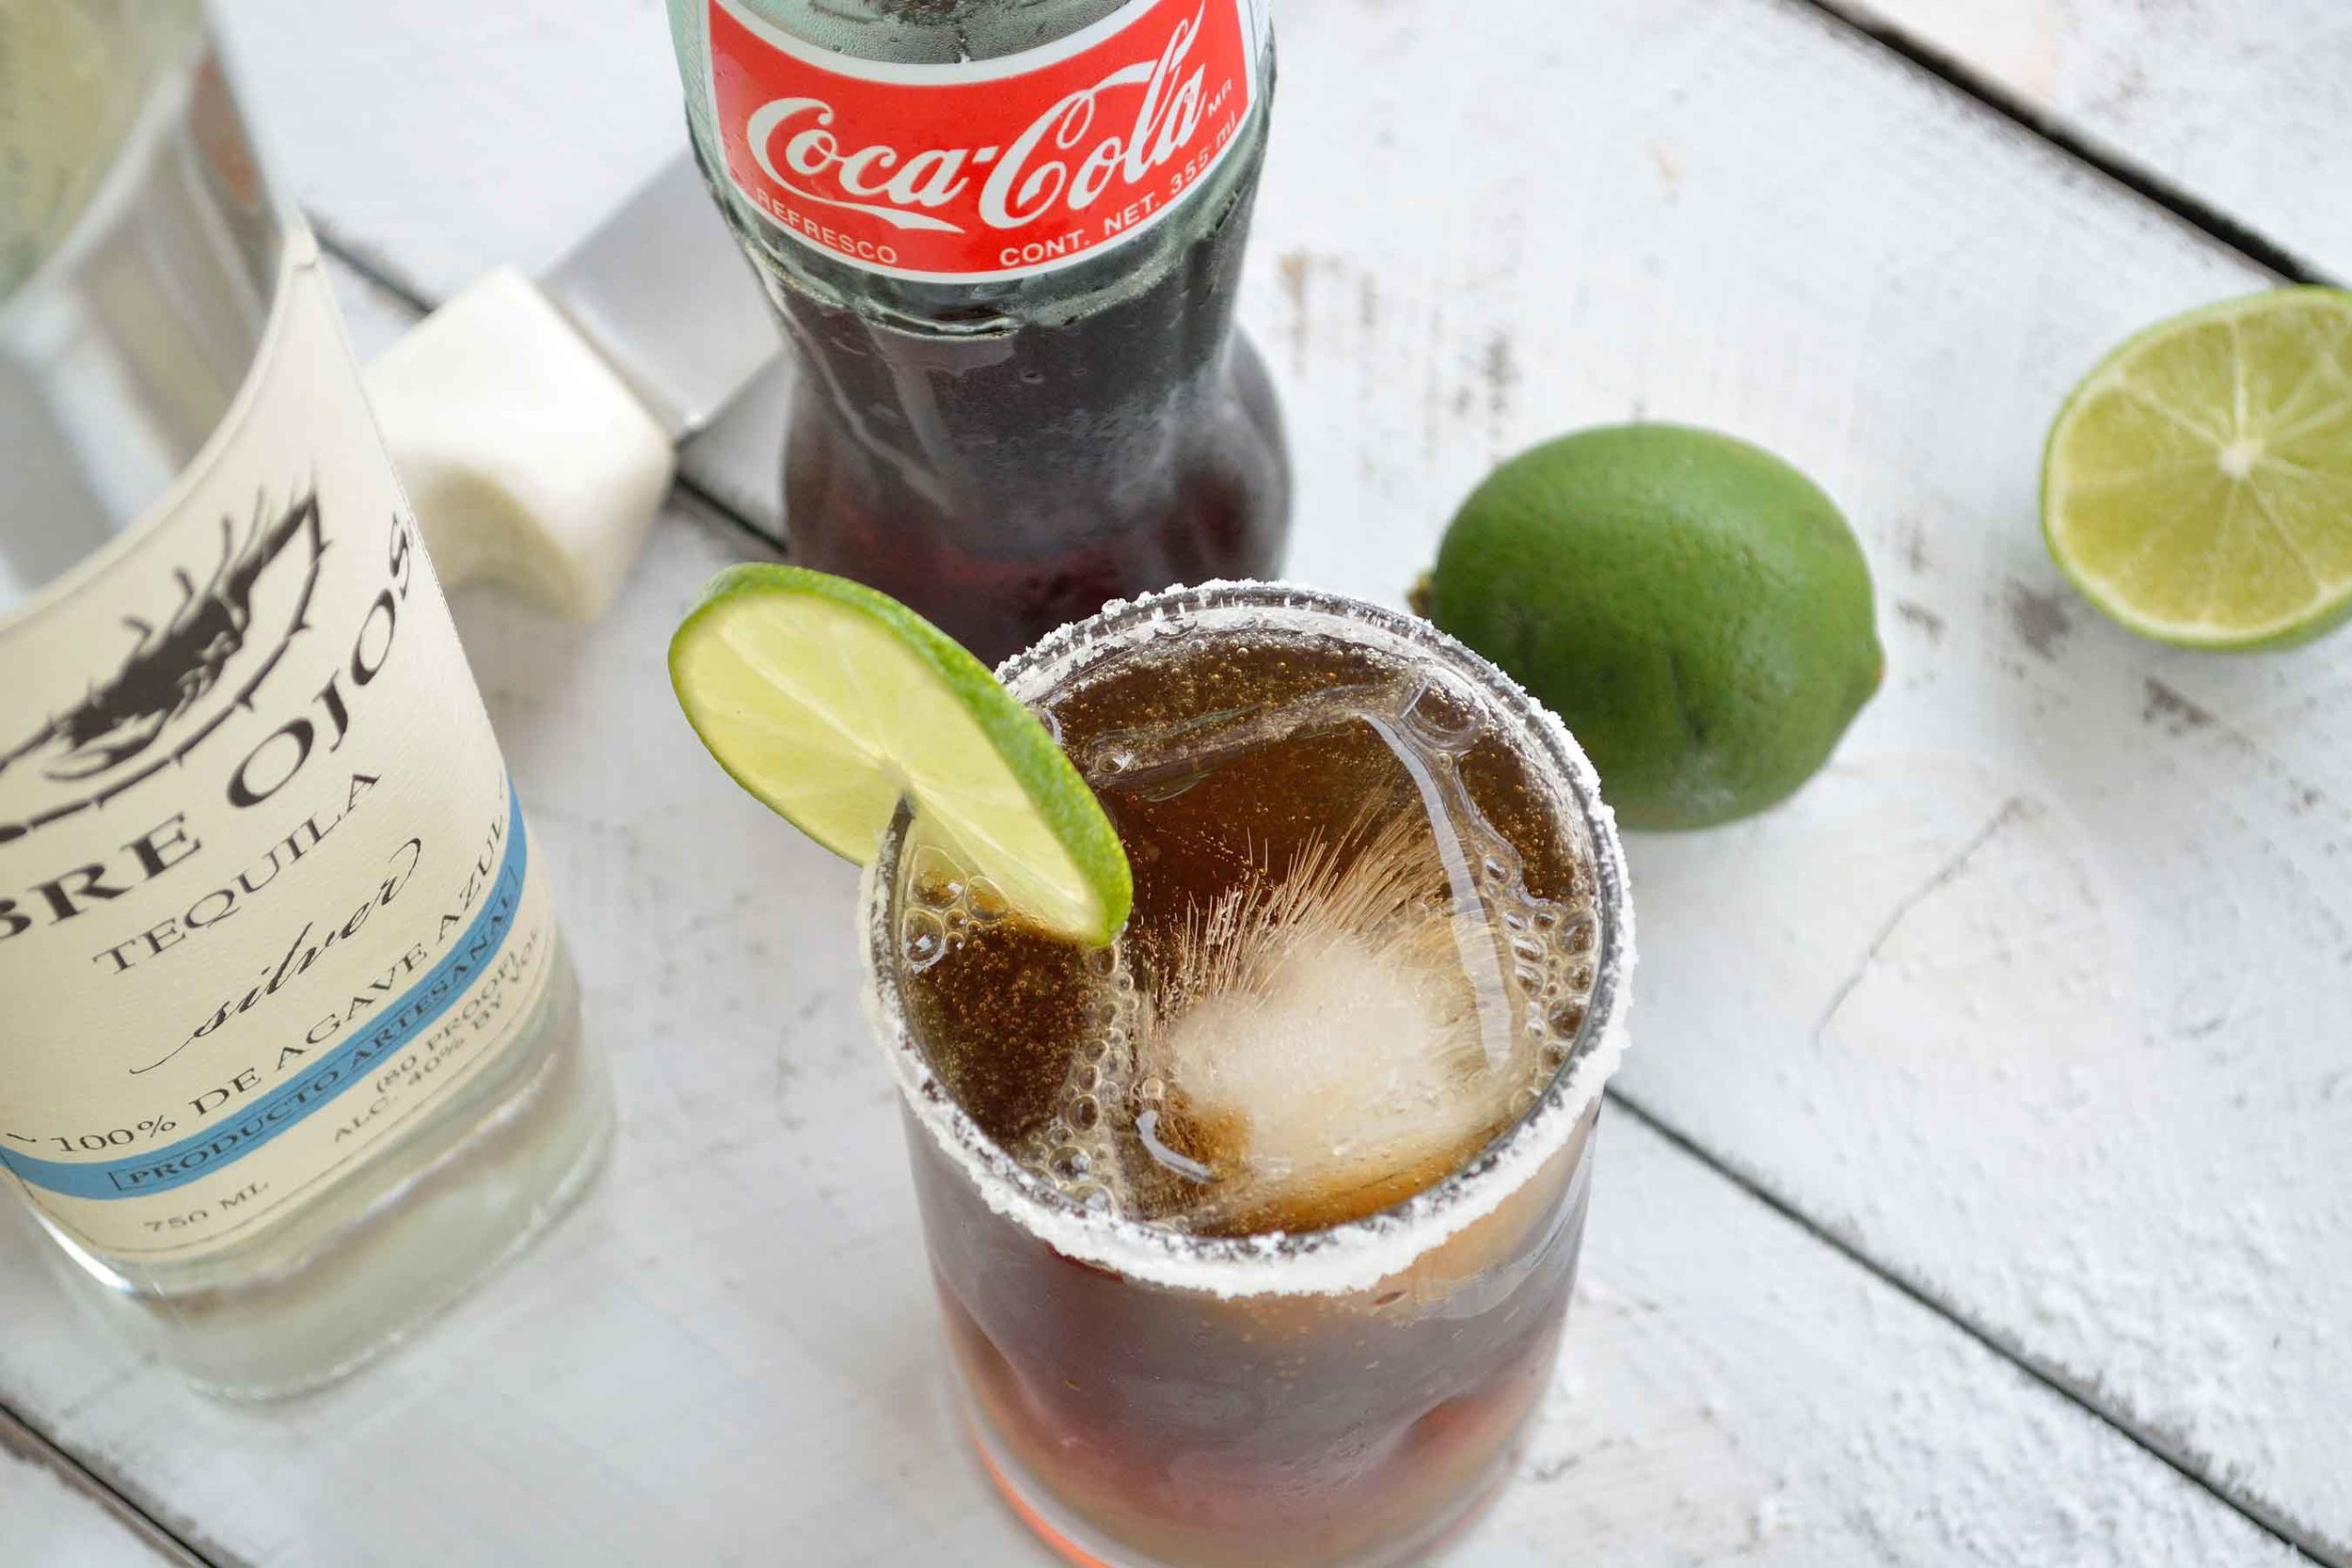 tequila_abre_ojos_coca_cola_lime_cocktail.jpg